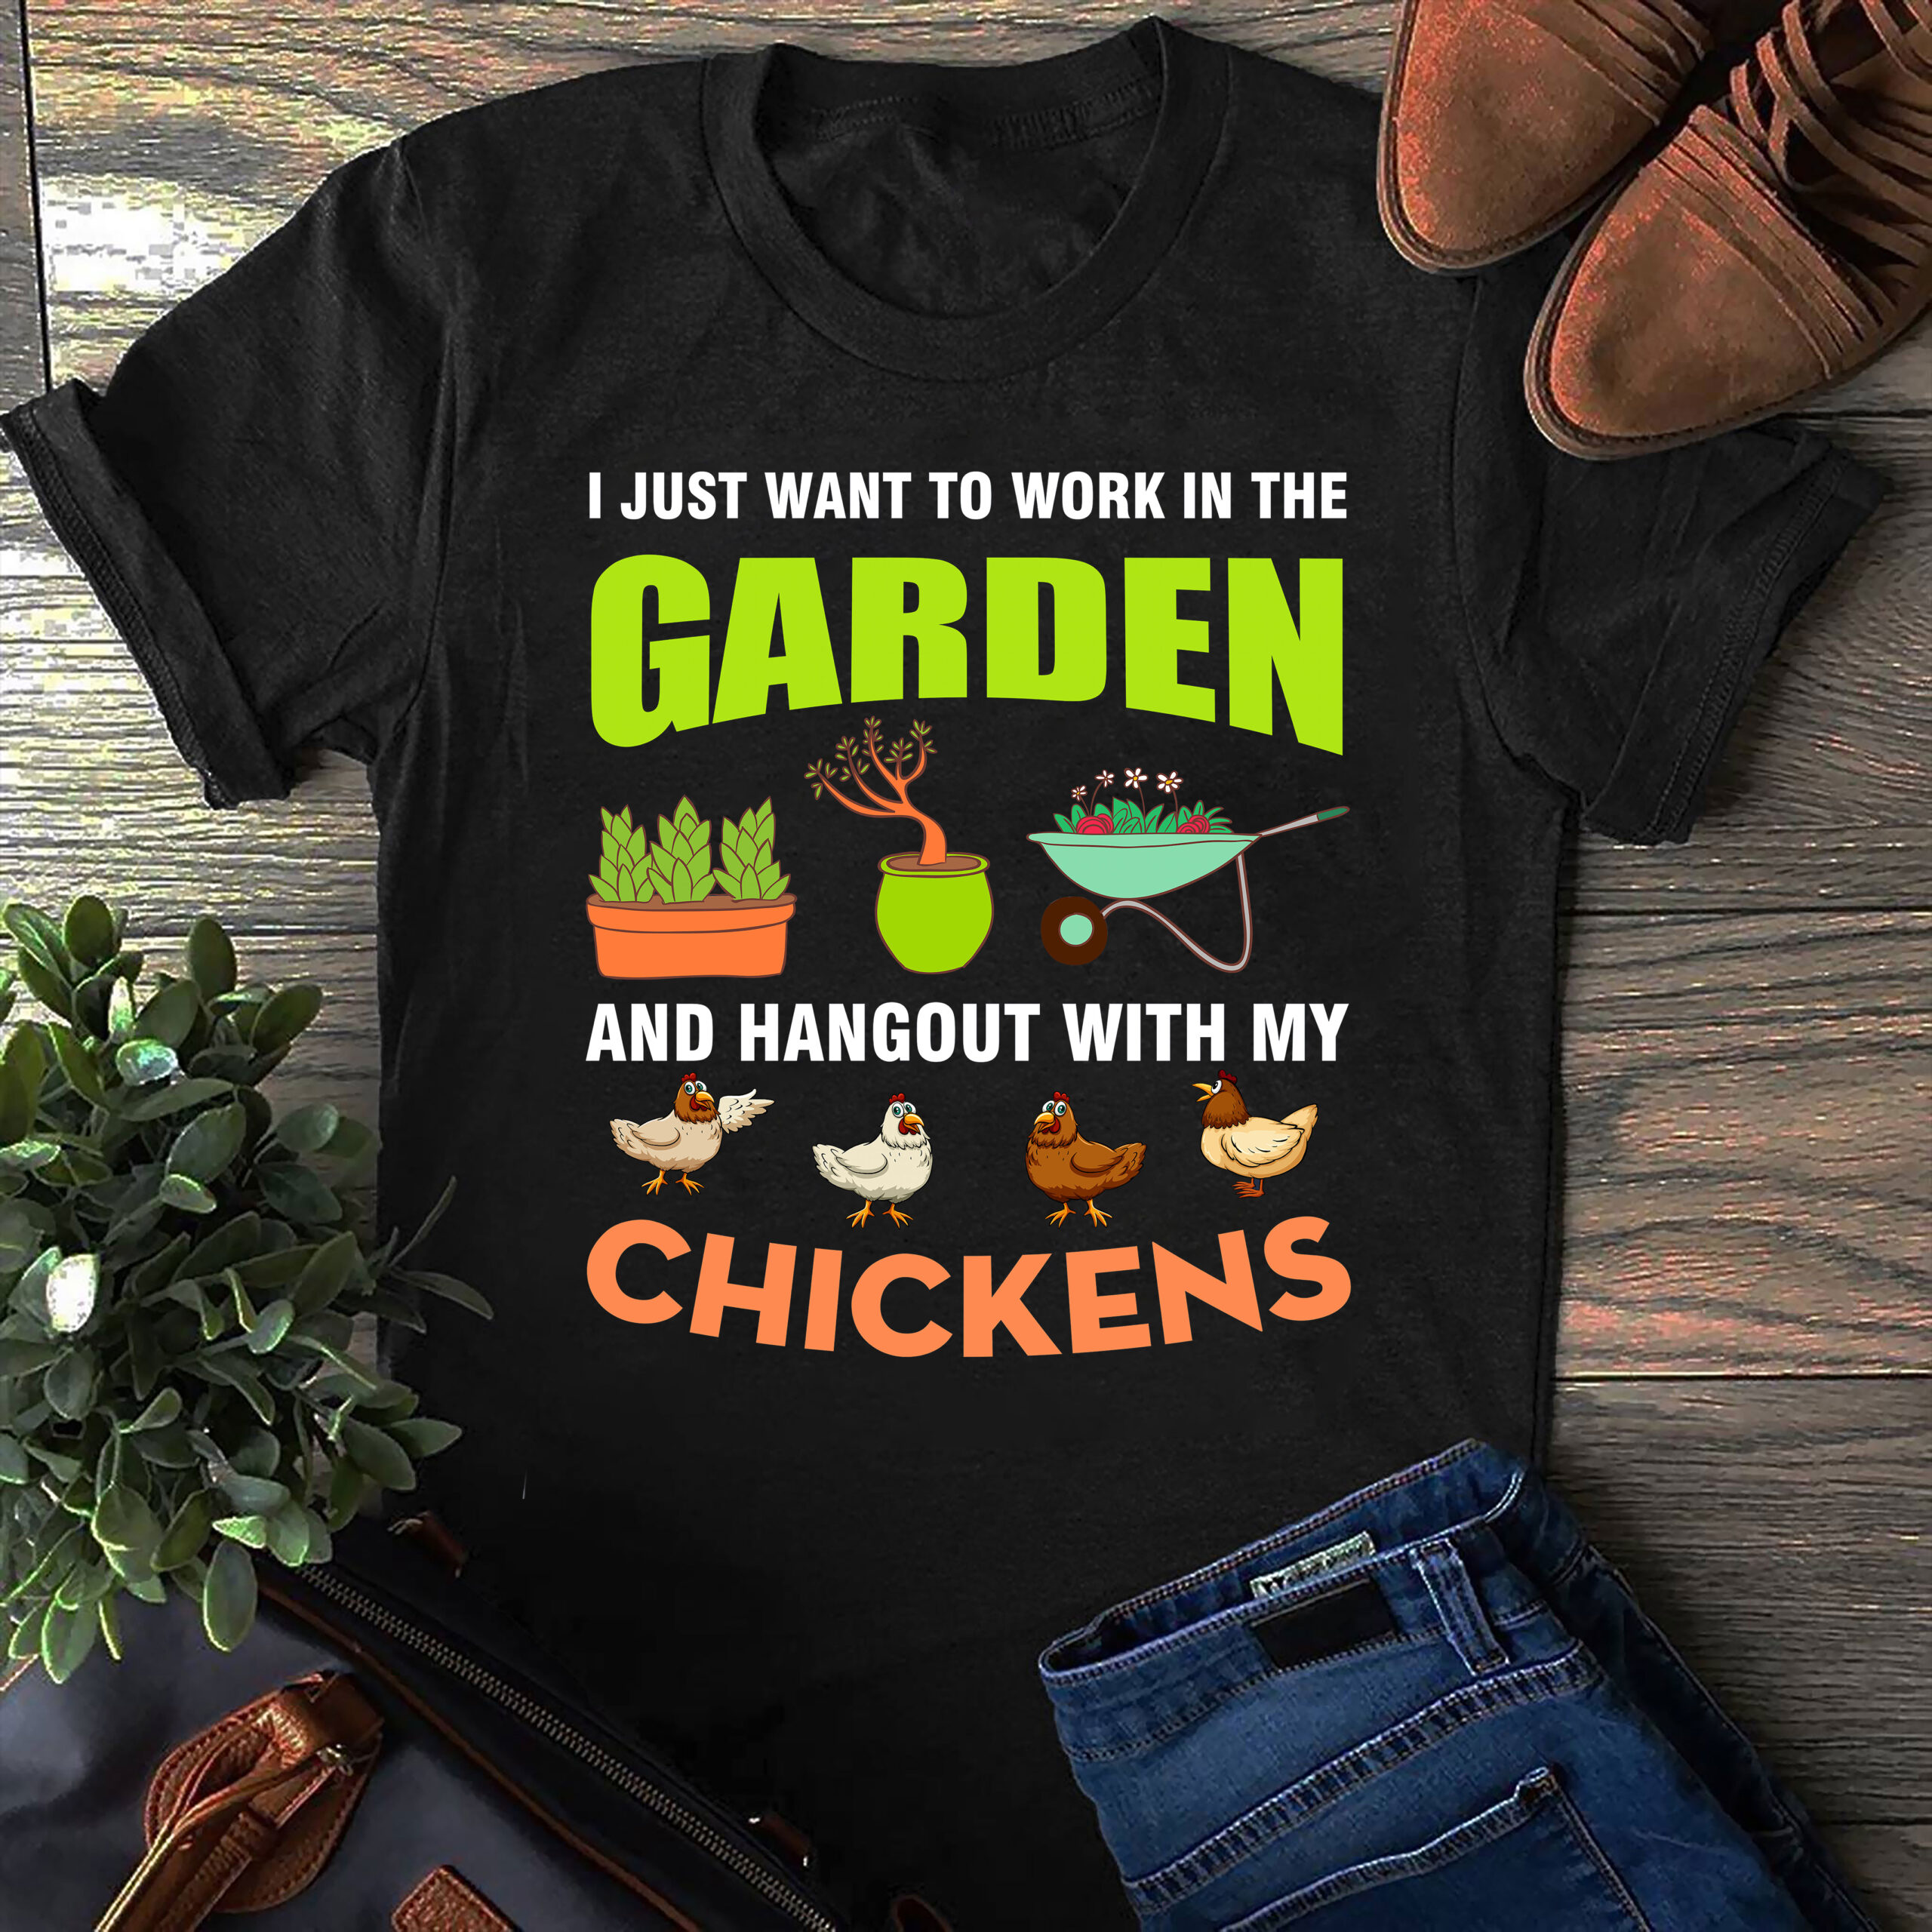 Garden Shirt Work In Garden Hang Out With Chickens